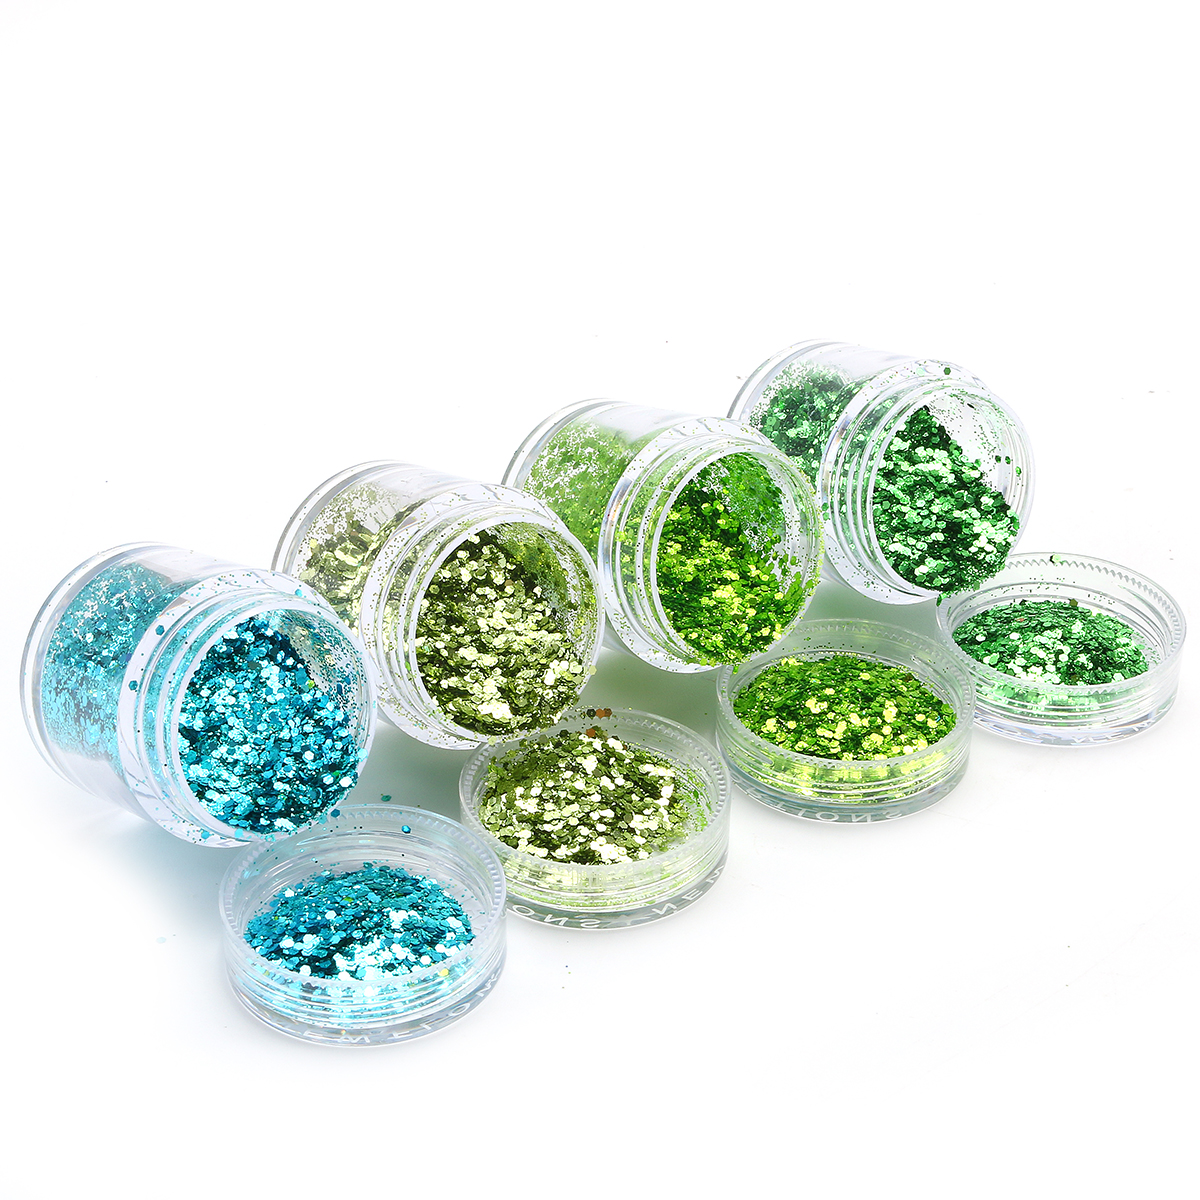 4 Box Nail Glitter Powder Tips 3D Colorful Sequins Makeup Manicure Decoration For Hollowen Party